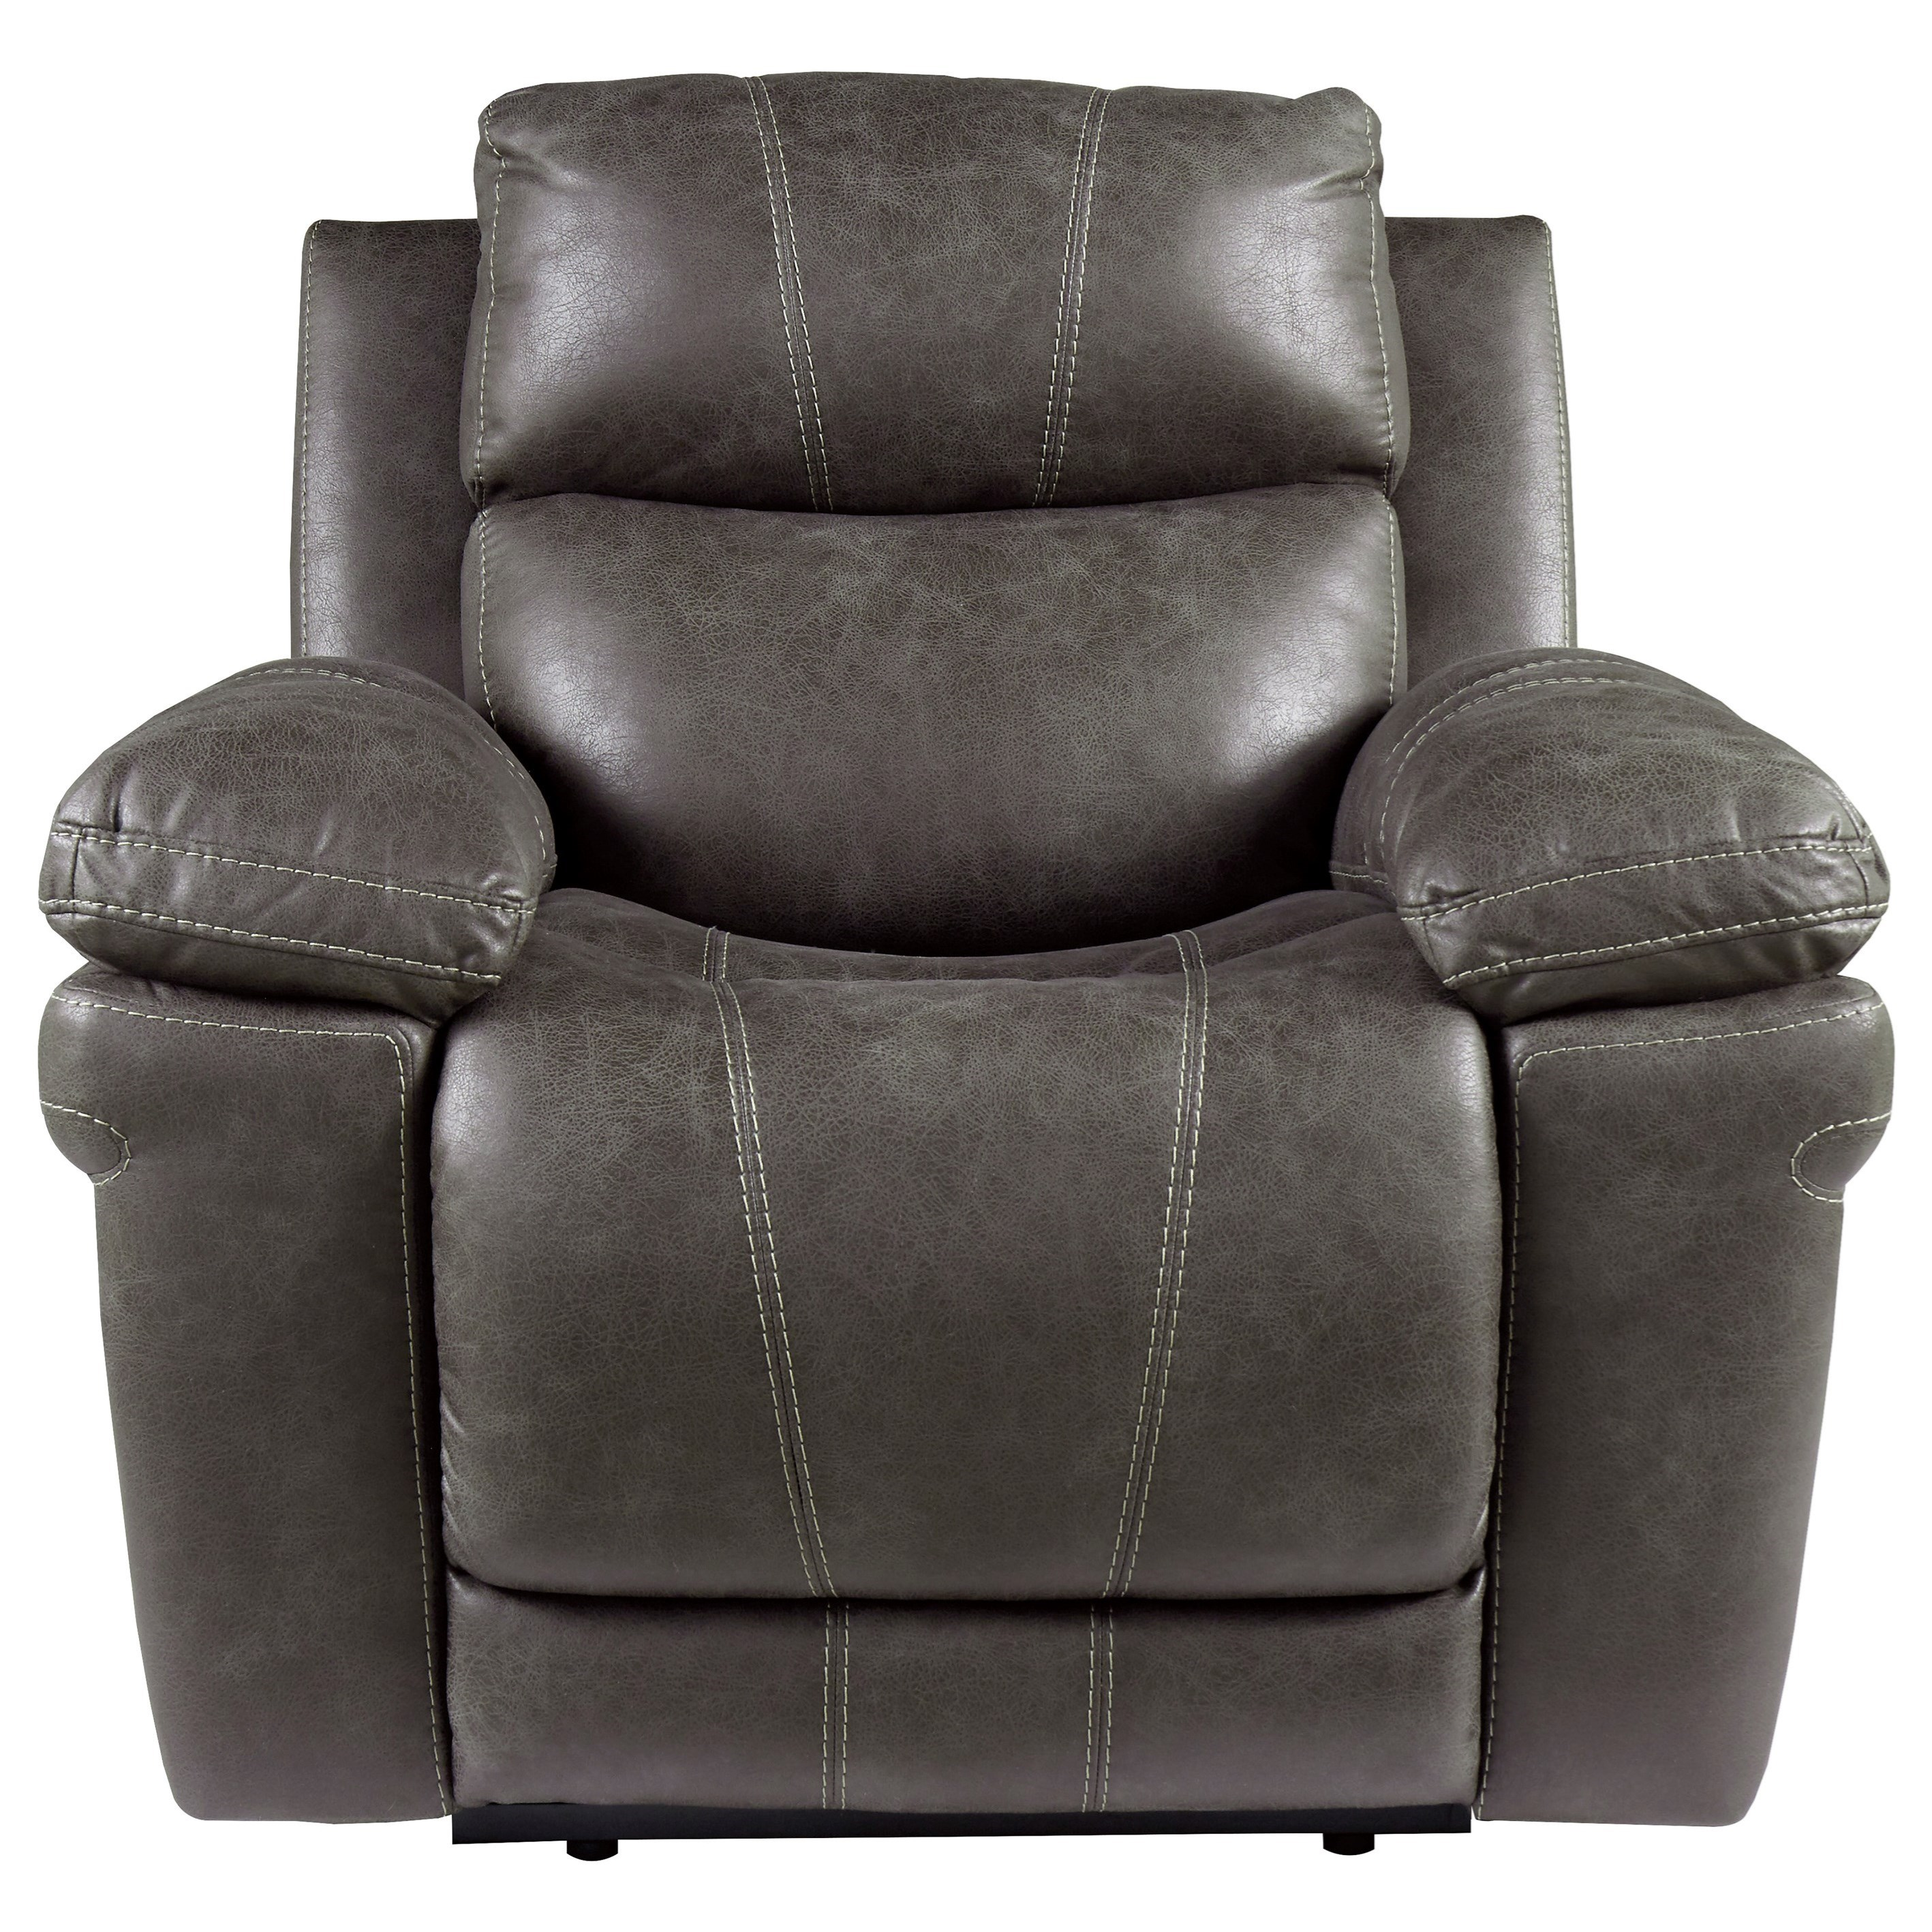 Erlangen Power Recliner with Power Headrest by Signature Design by Ashley at Value City Furniture